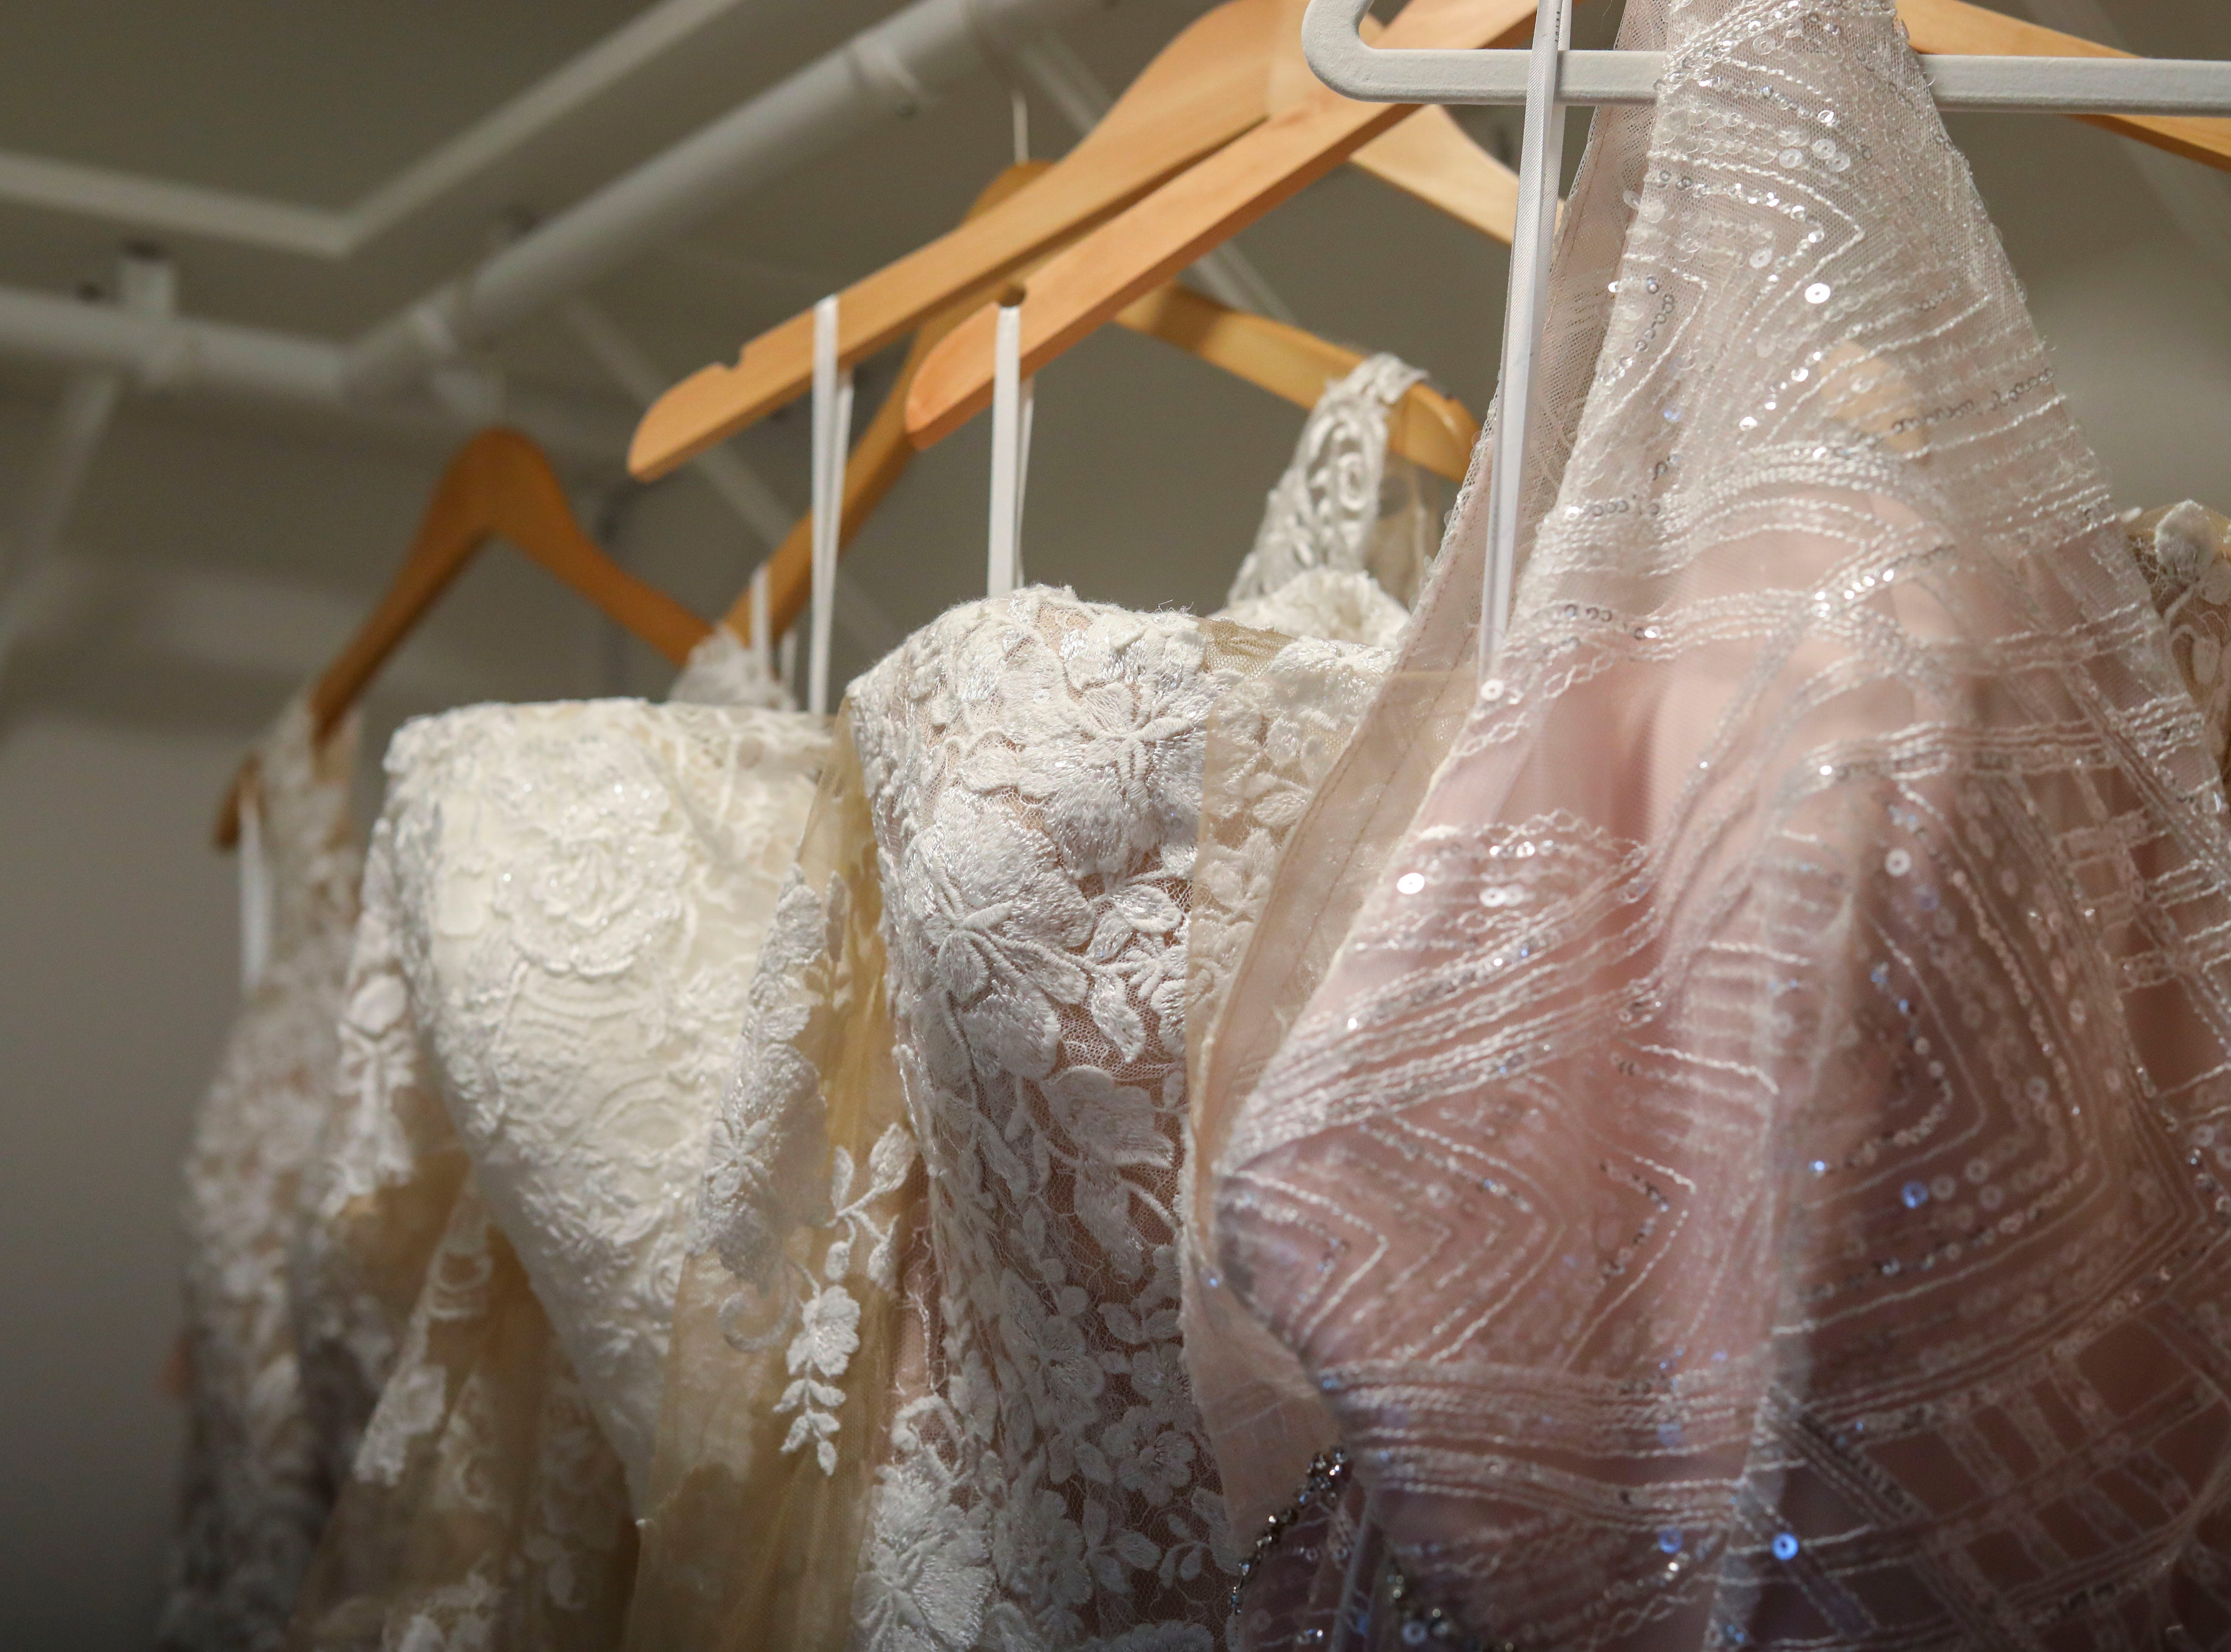 Dresses from Couture Closet Bridal hang before a photoshoot, featuring actual brides in their wedding dresses in NuLu in Louisville, Ky. on Monday, November 12, 2018.